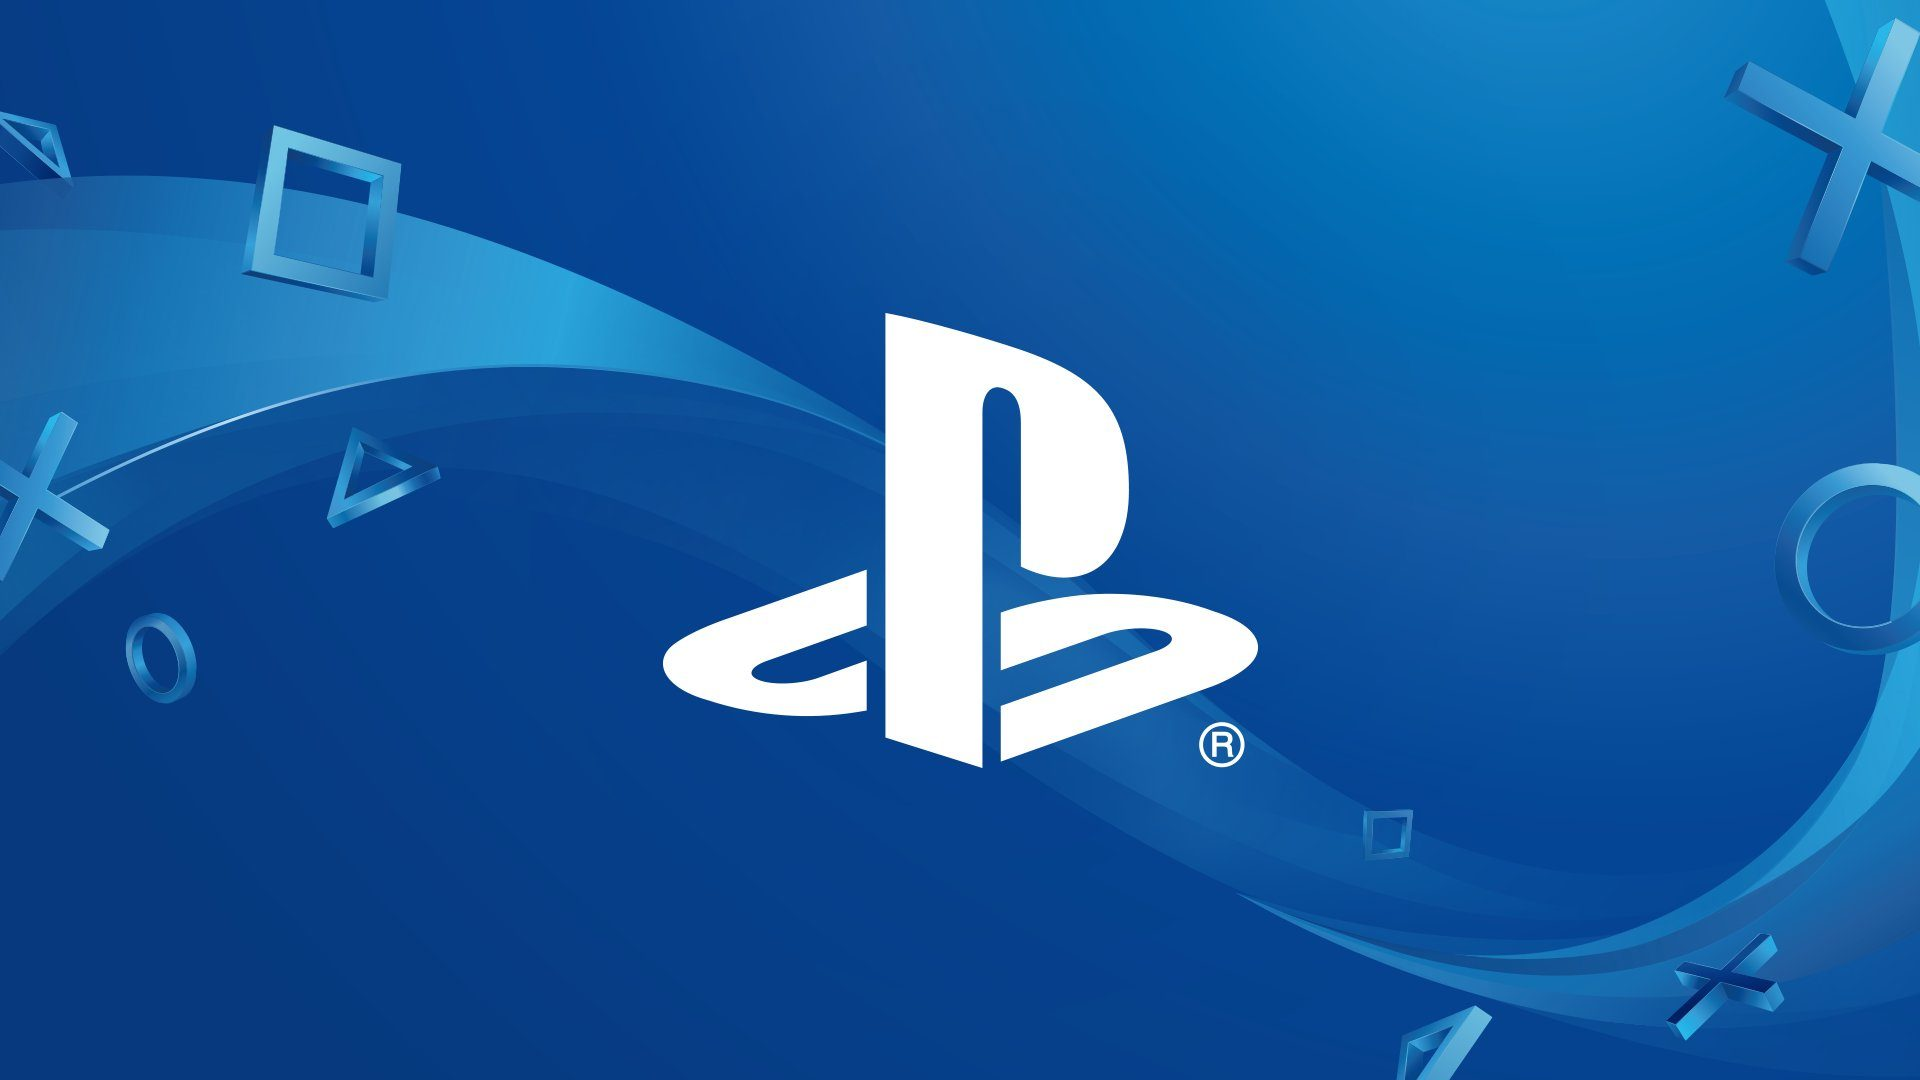 Sony Will Not Attend E3 2019